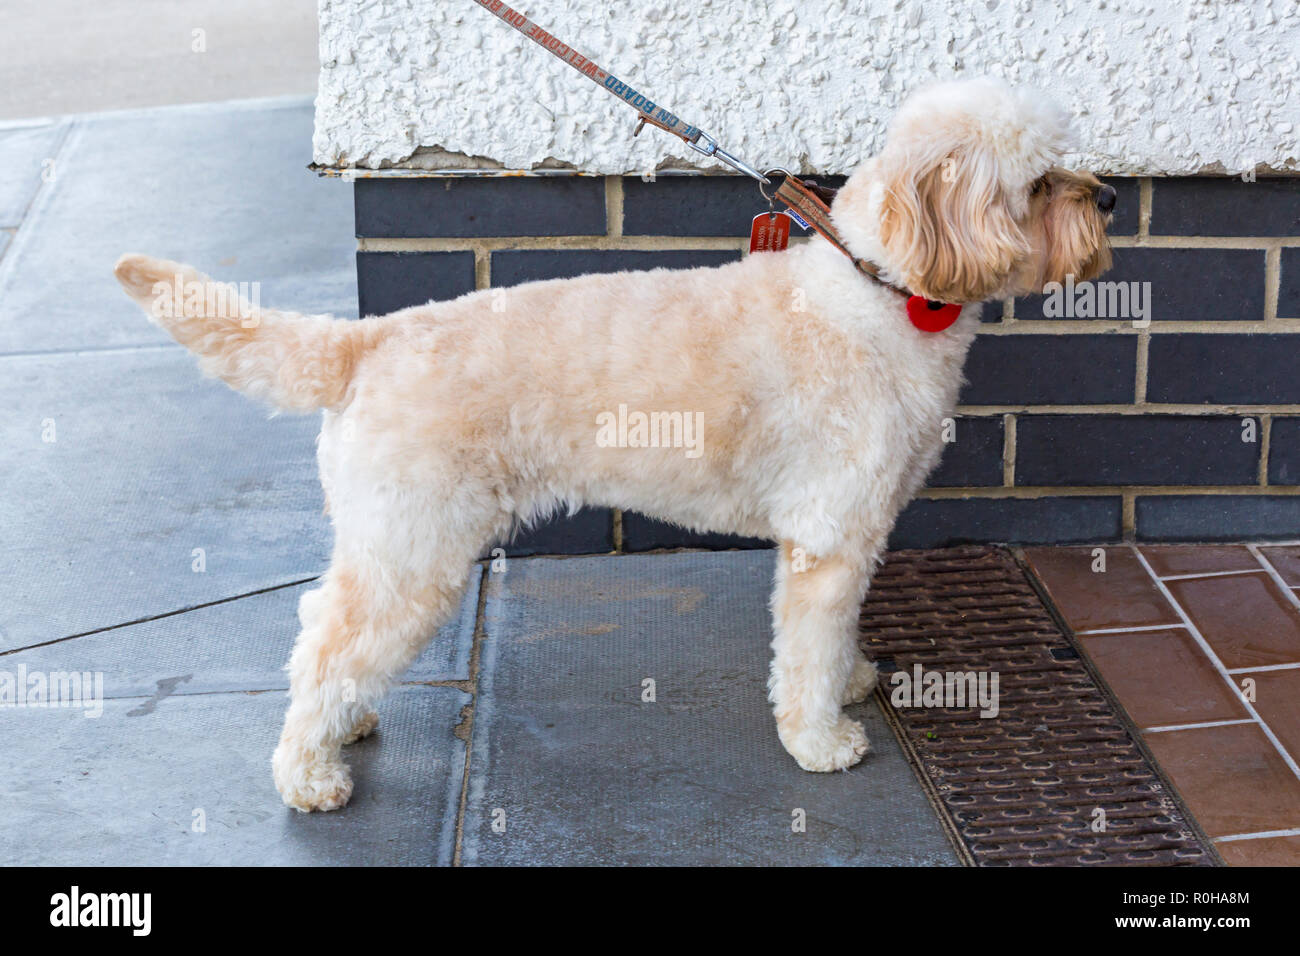 Cavapoo dog wearing red poppy for Remembrance day at Swanage, Dorset UK in November - Stock Image